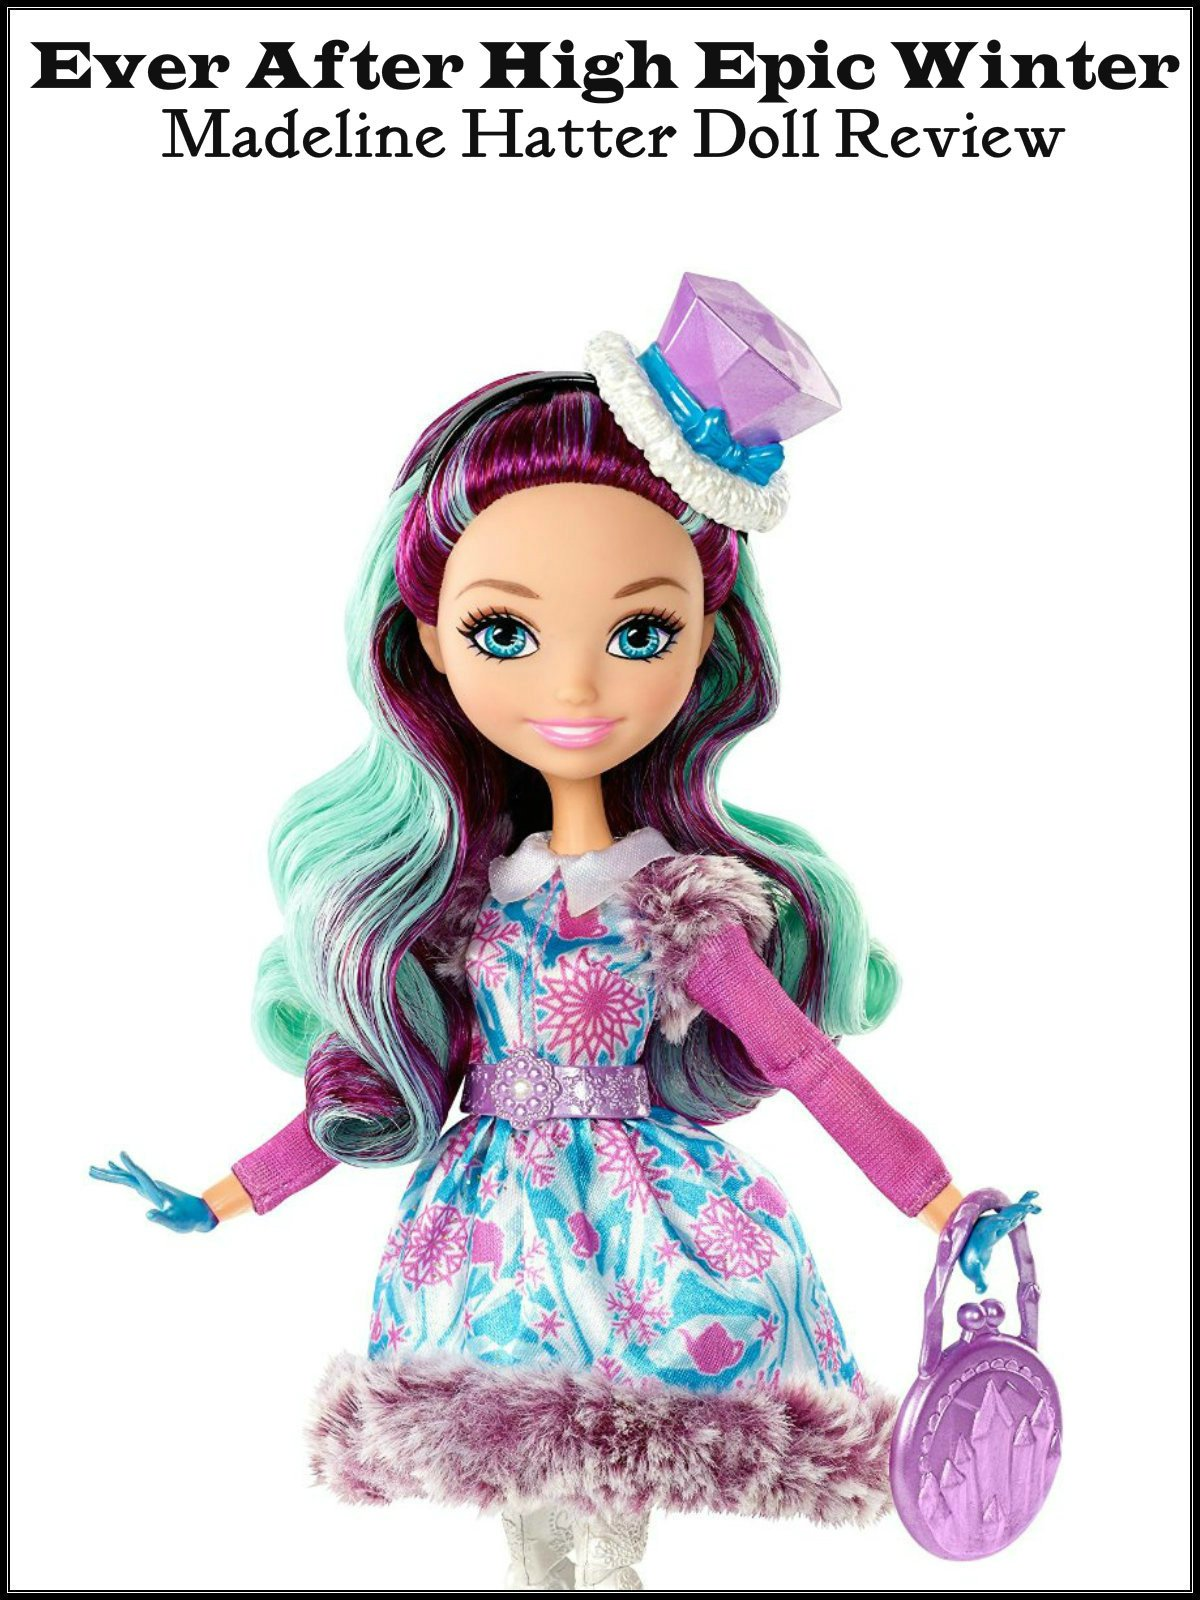 Amazon com: Review: Ever After High Epic Winter Madeline